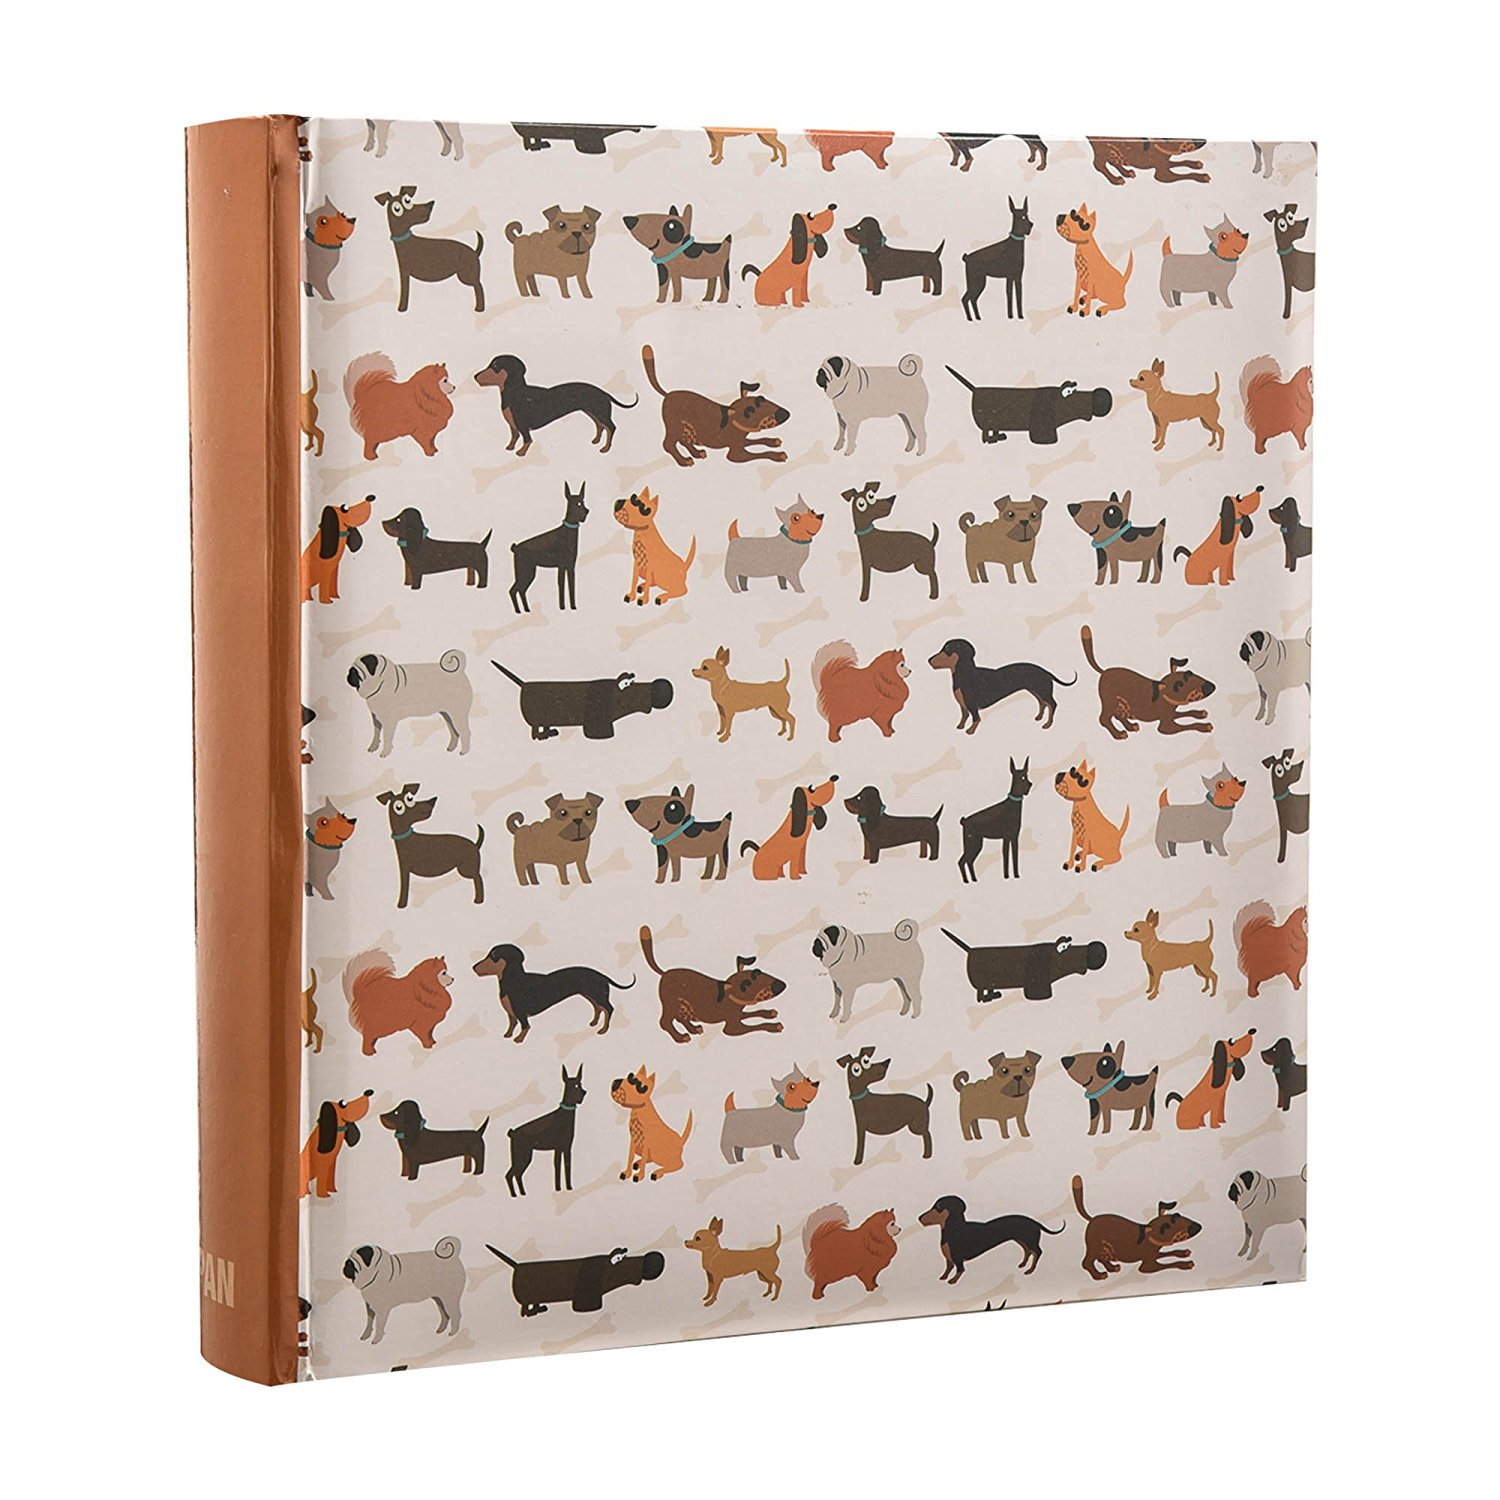 Chinese Year of the Dog baby gifts: Arpan dog photo album holds 200 photos